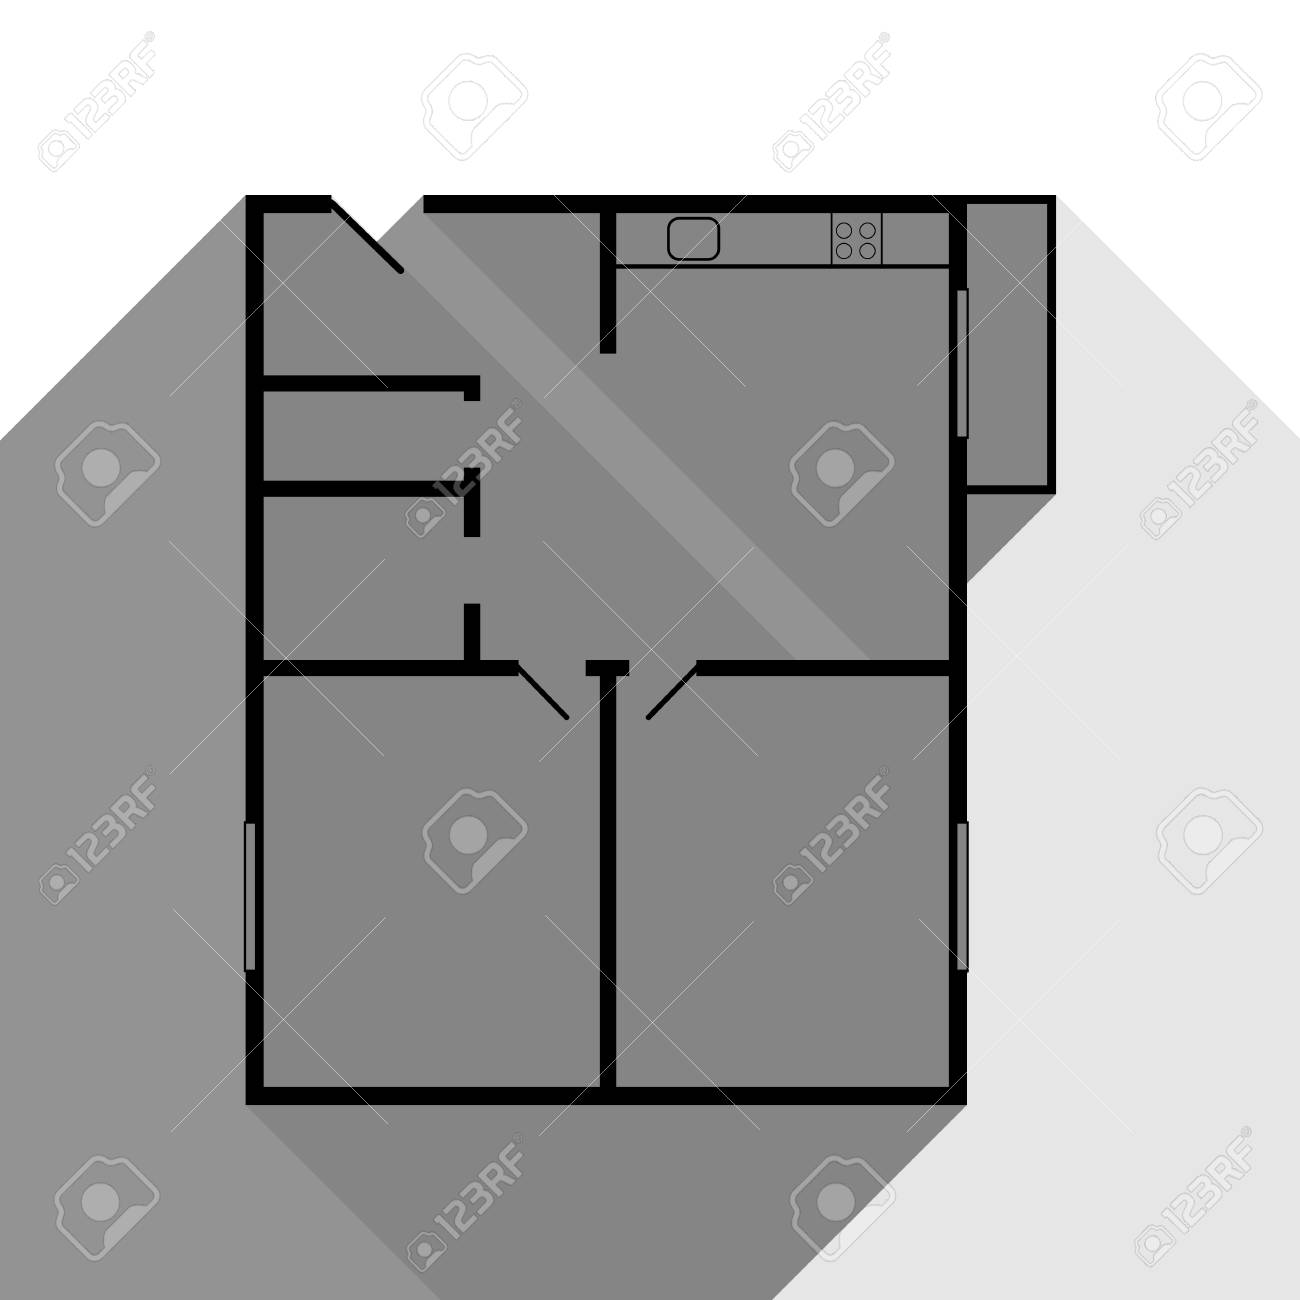 . Apartment house floor plans  Vector  Black icon with two flat